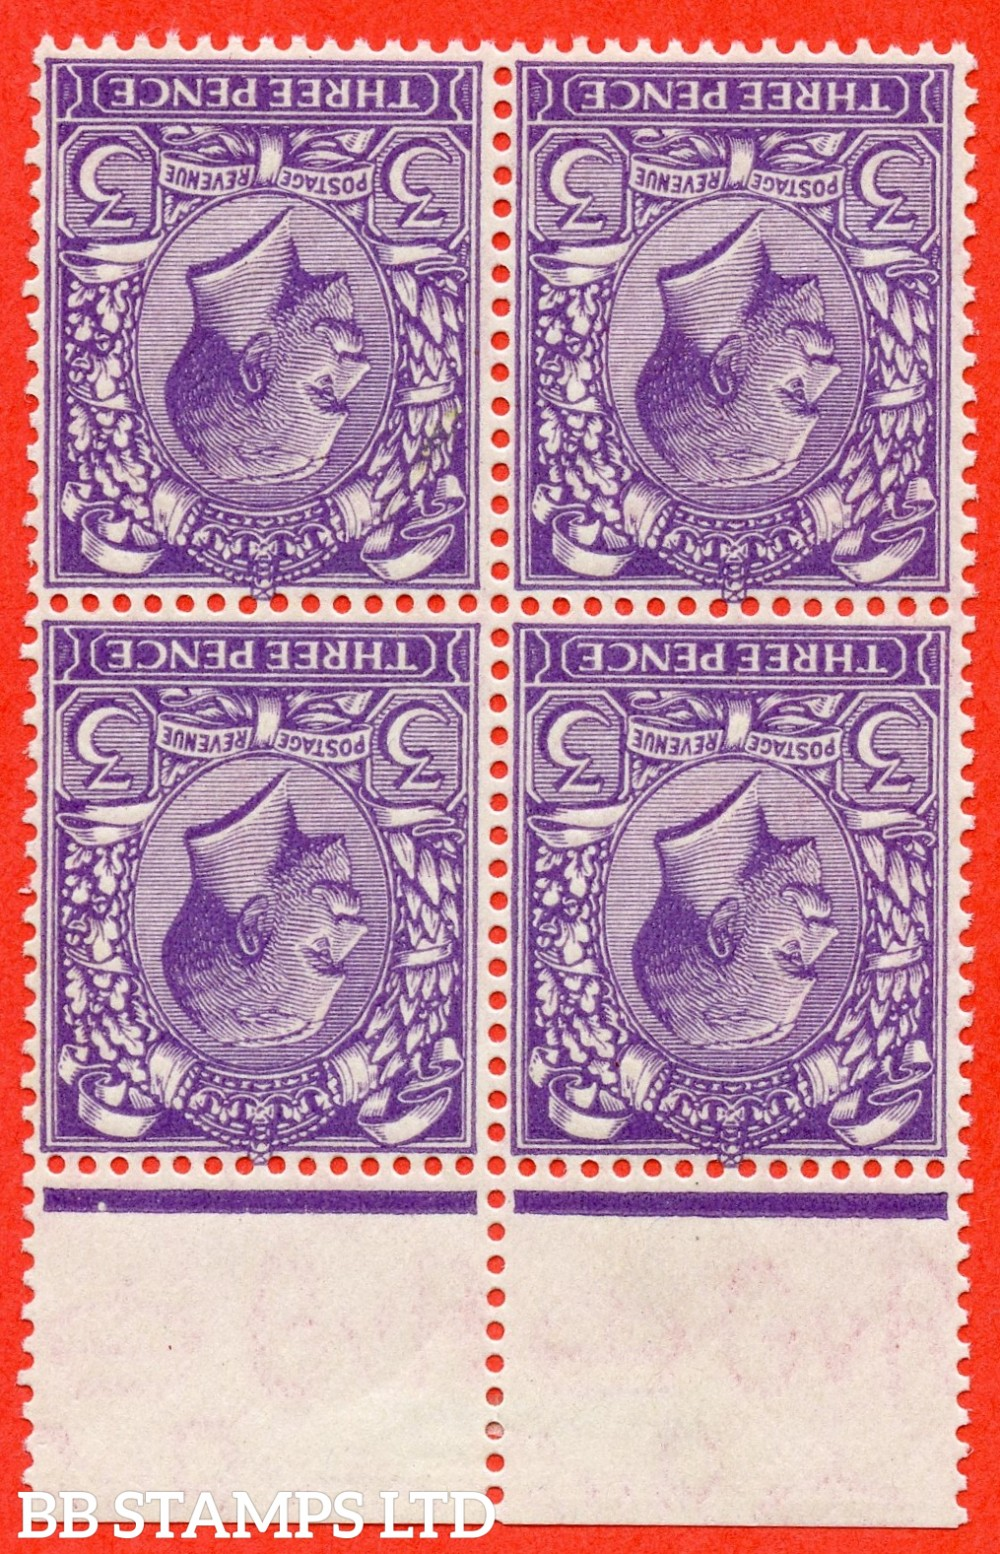 SG. 423 wi variety N38 a (UNLISTED). 3d reddish violet. INVERTED WATERMARK. A very fine UNMOUNTED MINT top marginal block of 4 of this known but UNLISTED by SG George V shade variety complete with Hendon certificate.